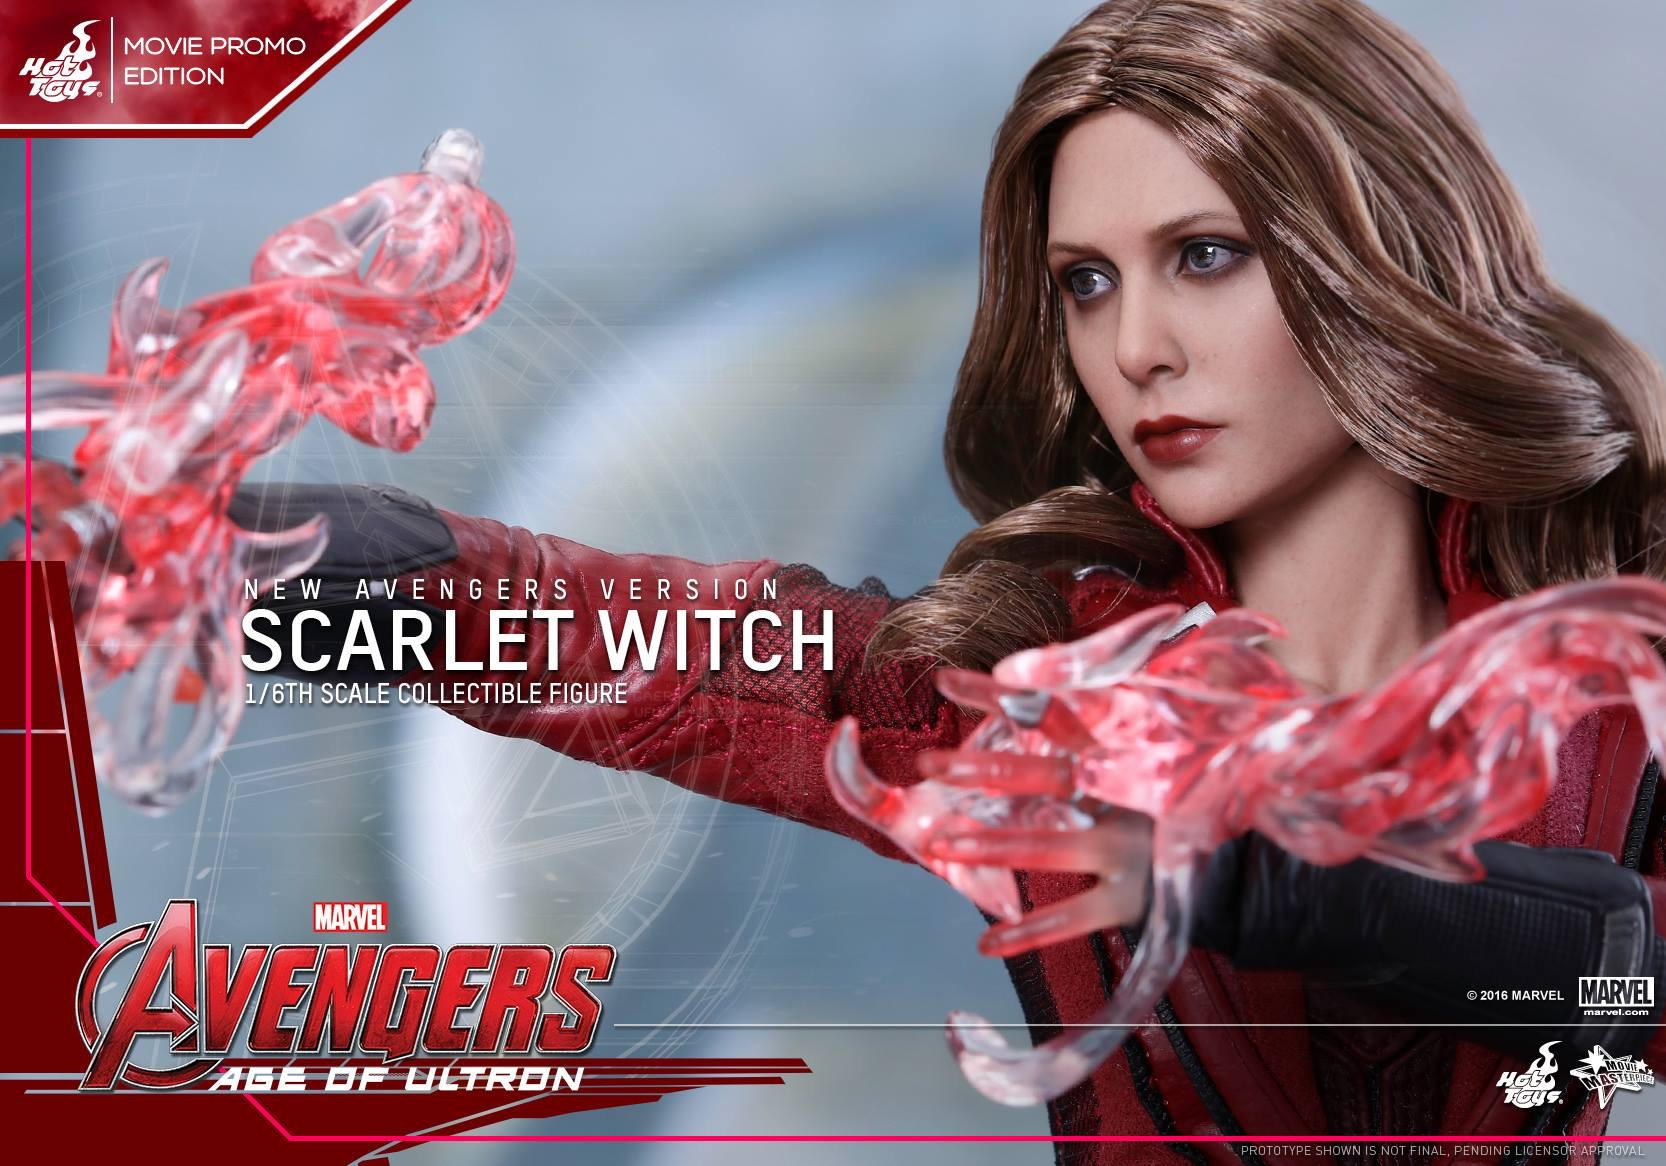 AVENGERS 2 : AGE OF ULTRON - SCARLET WITCH (MM$357) 160415024943619839